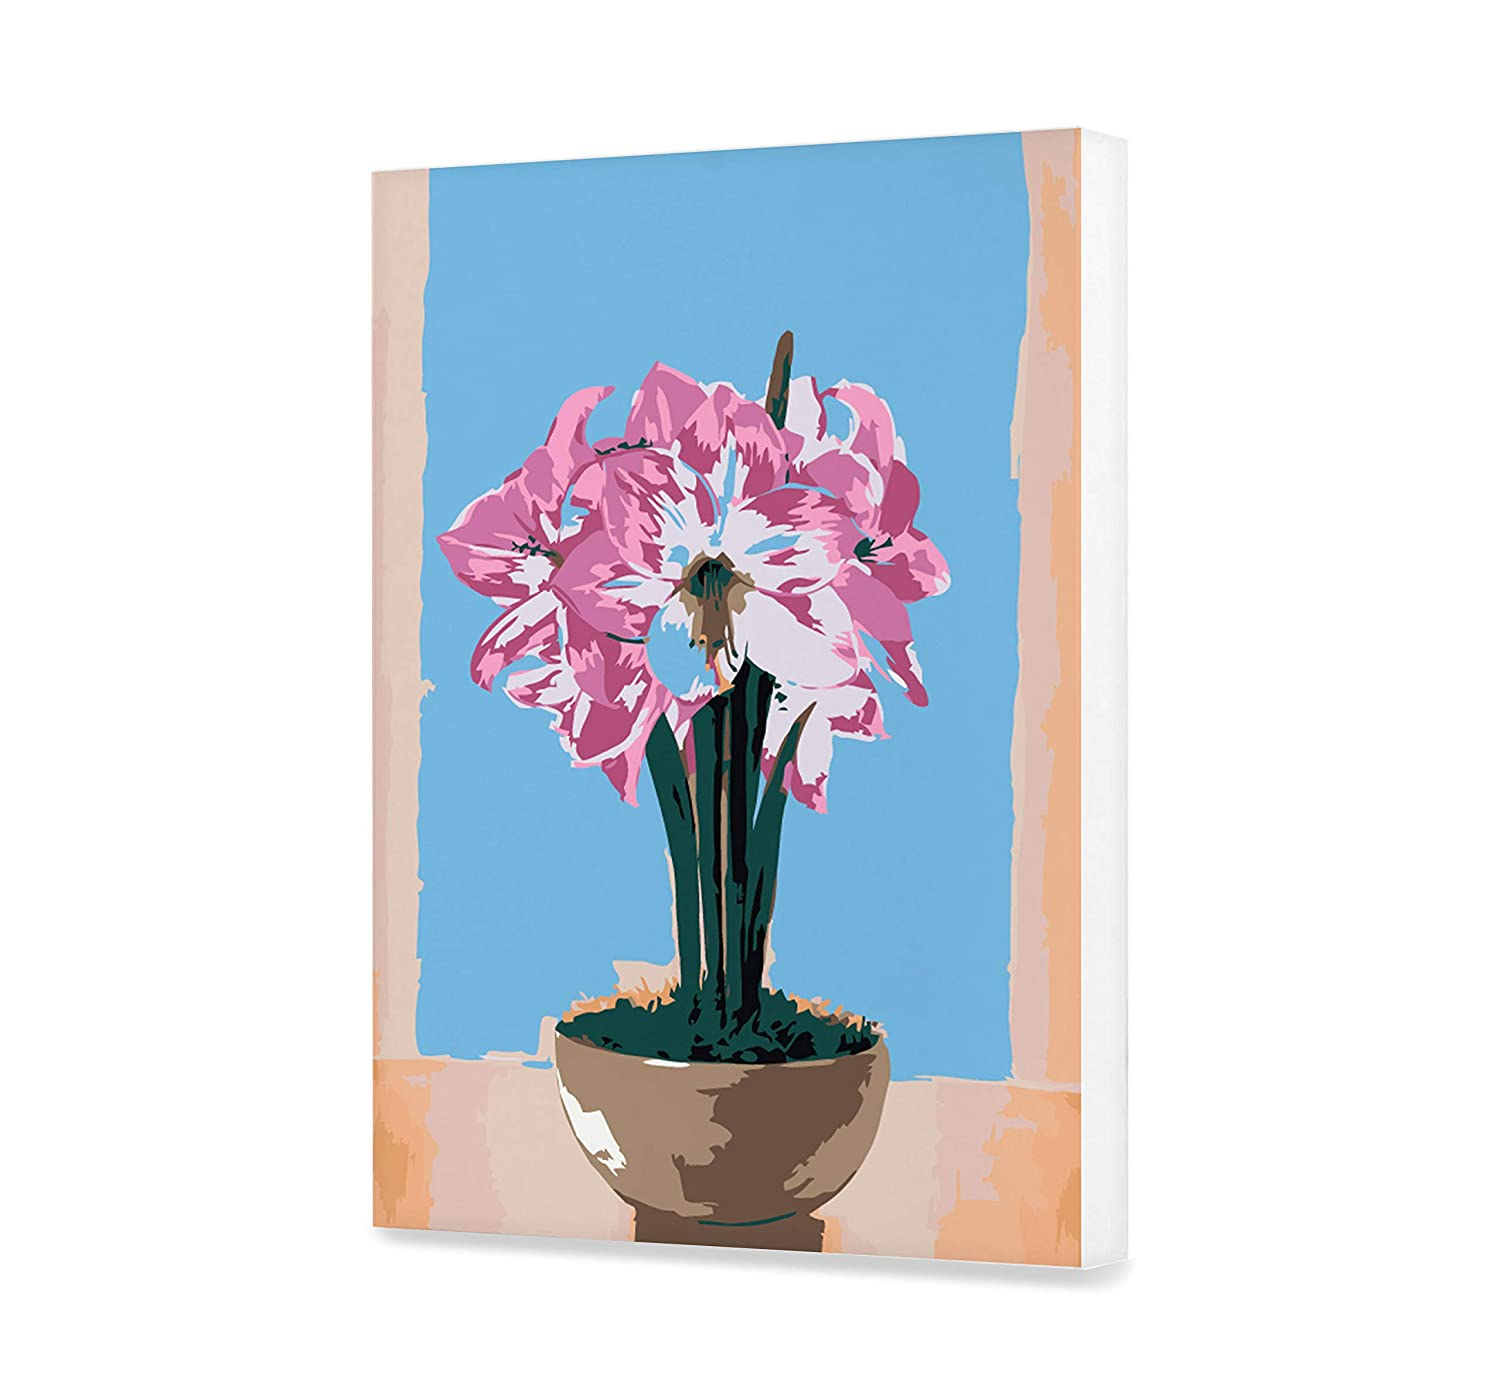 Amaryllis Paint By Numbers For Adults Beautiful Acrylic Flowerpot Painting On Canvas Flower Paint By Your Own Plant DIY Kit Oil Wall Art Decoration